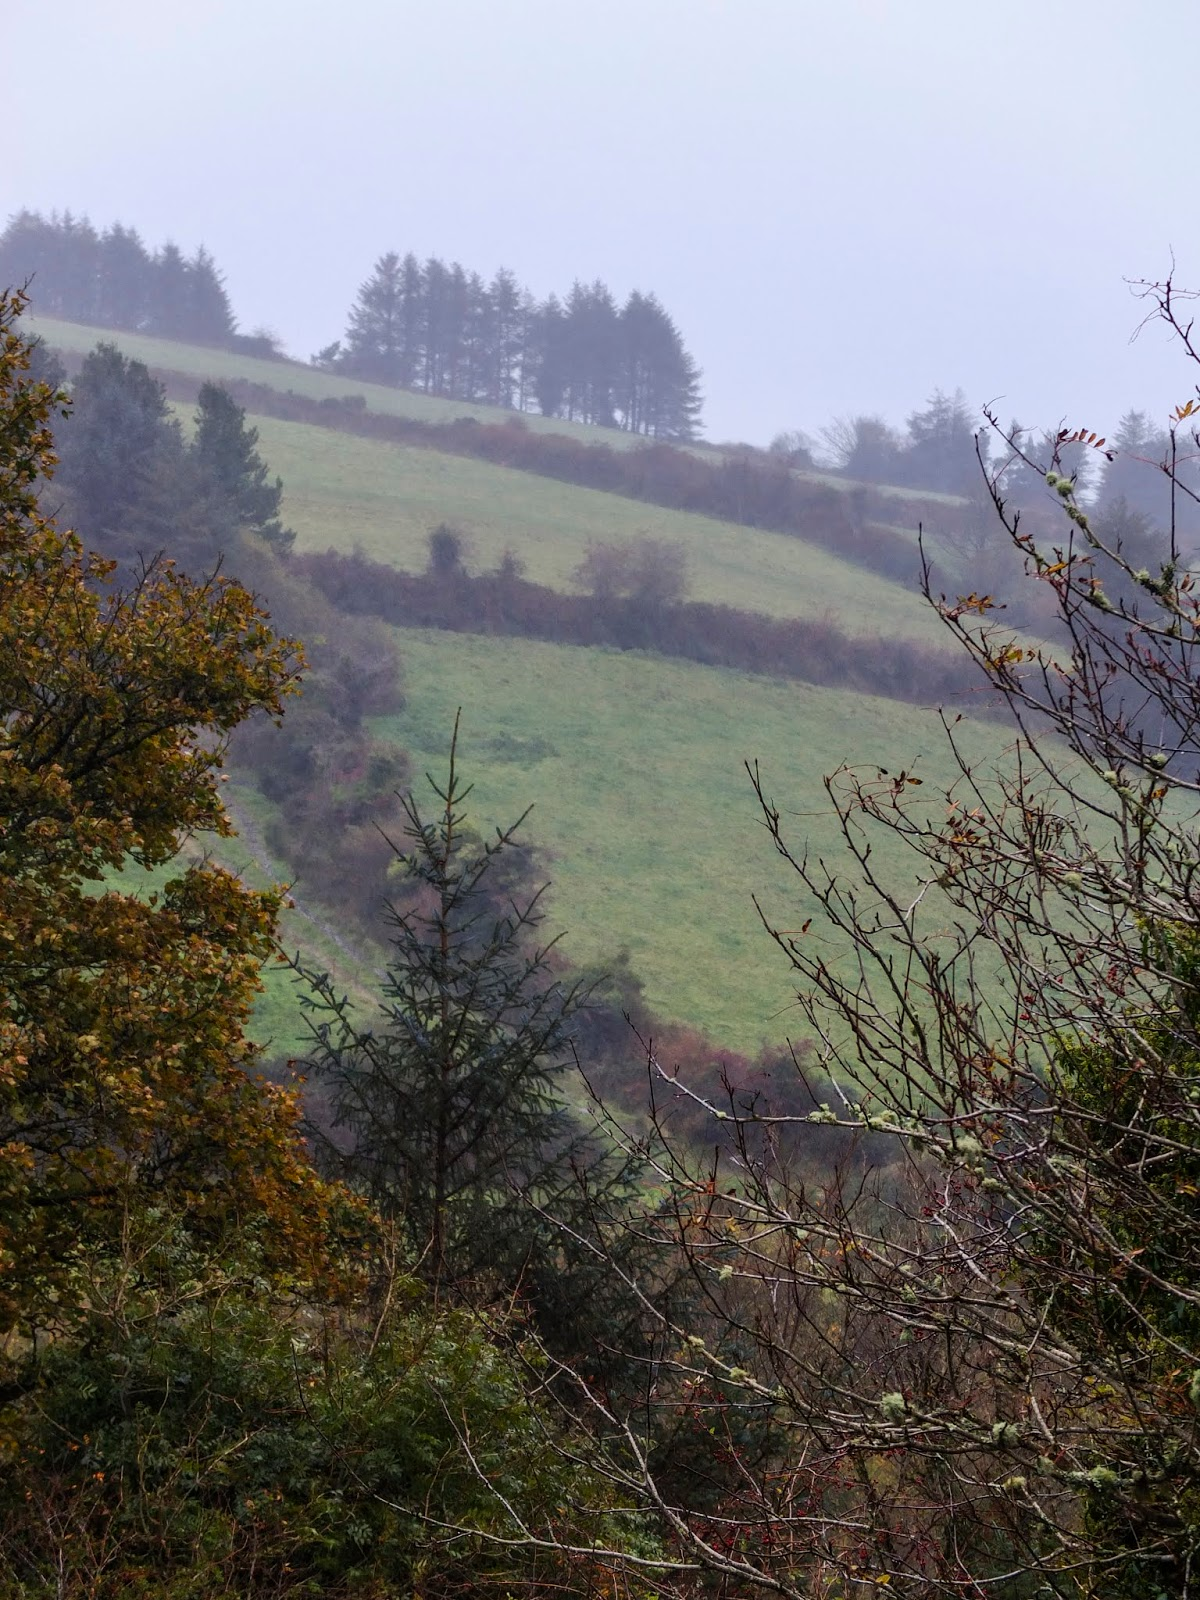 An autumn landscape on a foggy day in the Boggeragh Mountains in North Cork.